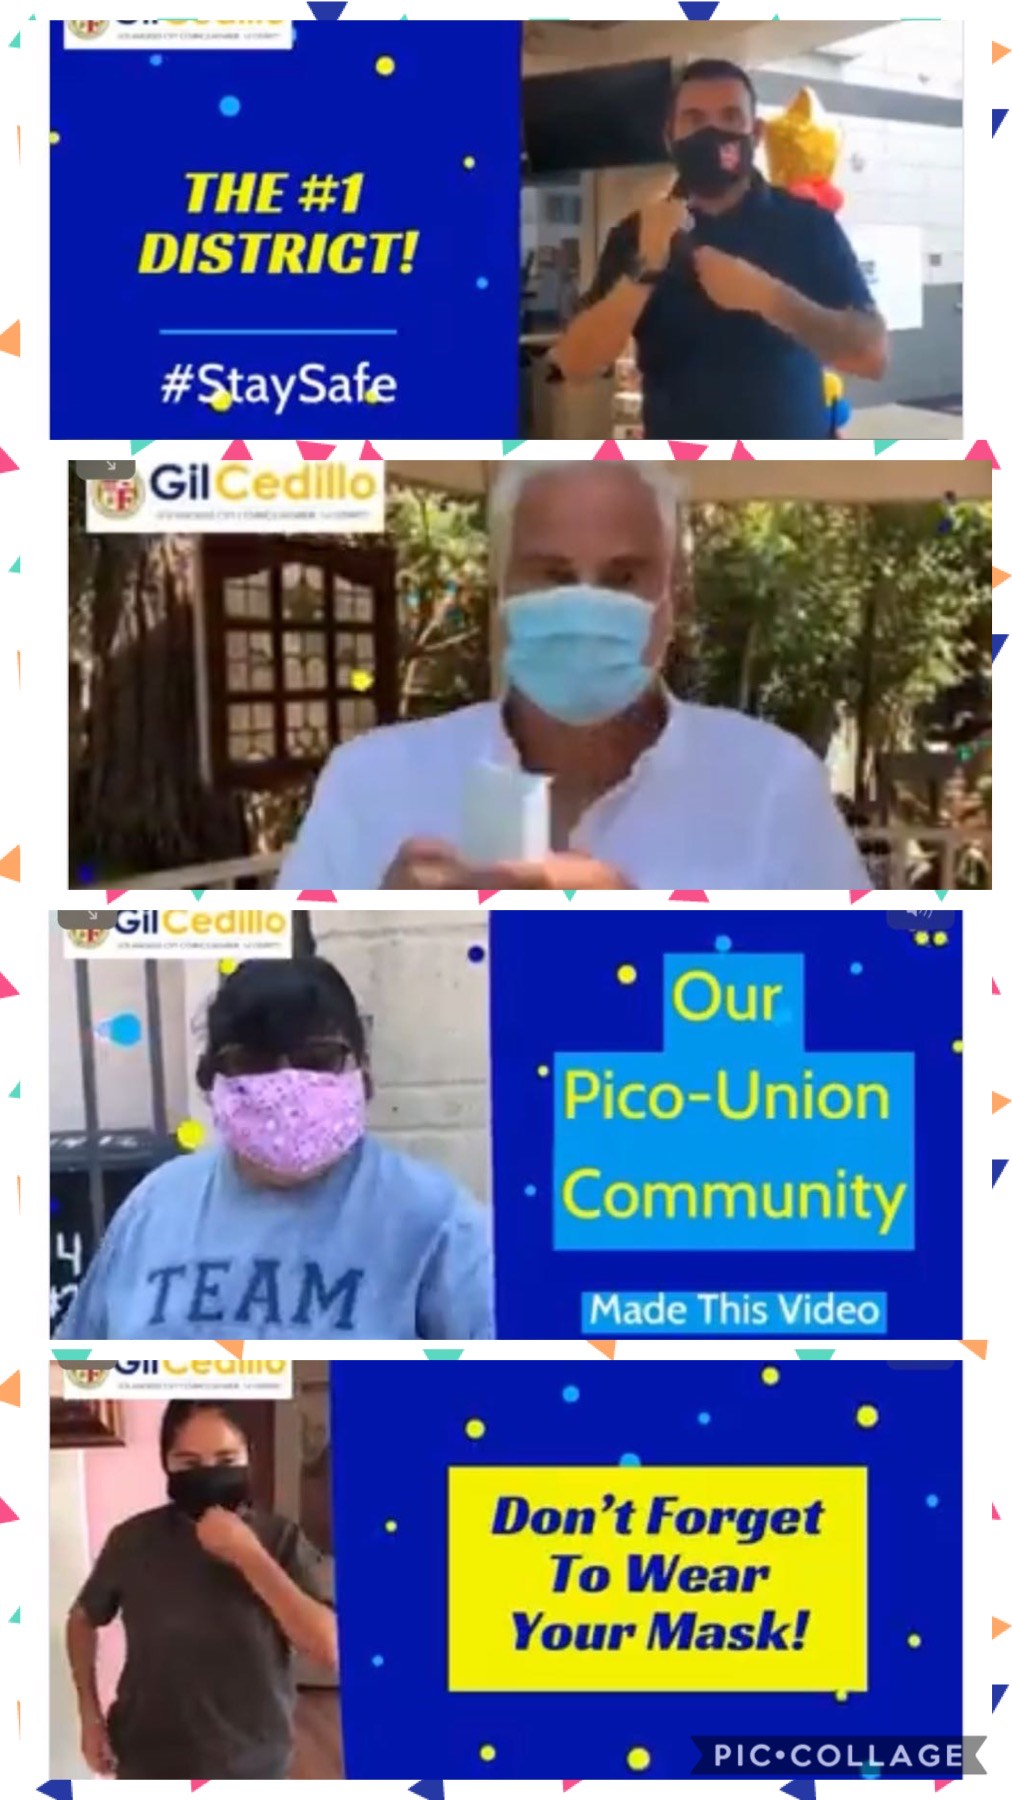 Pico Union Wear a Mask Video Image COLLAGE